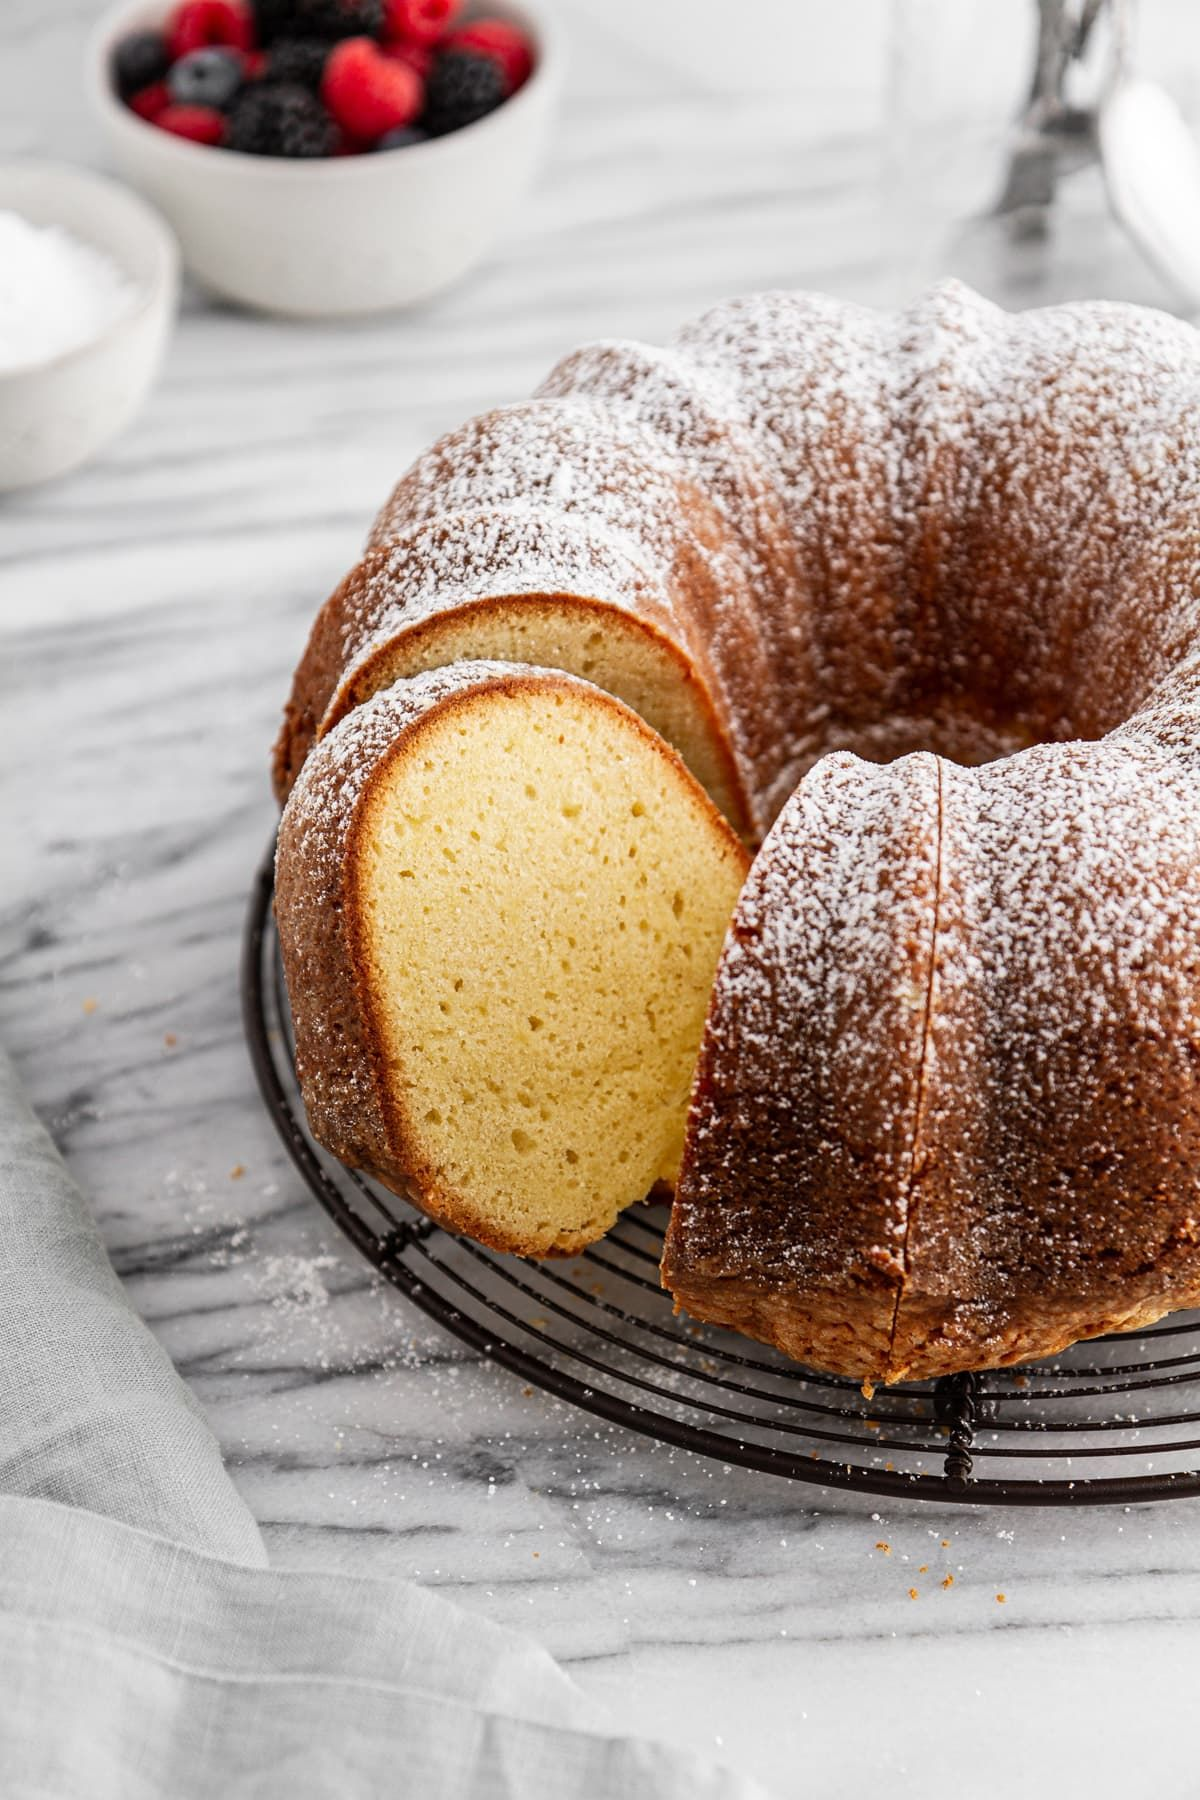 Sour Cream Pound Cake Recipe Girl Versus Dough Recipe In 2020 Sour Cream Pound Cake Bundt Cakes Recipes Sweet Cakes